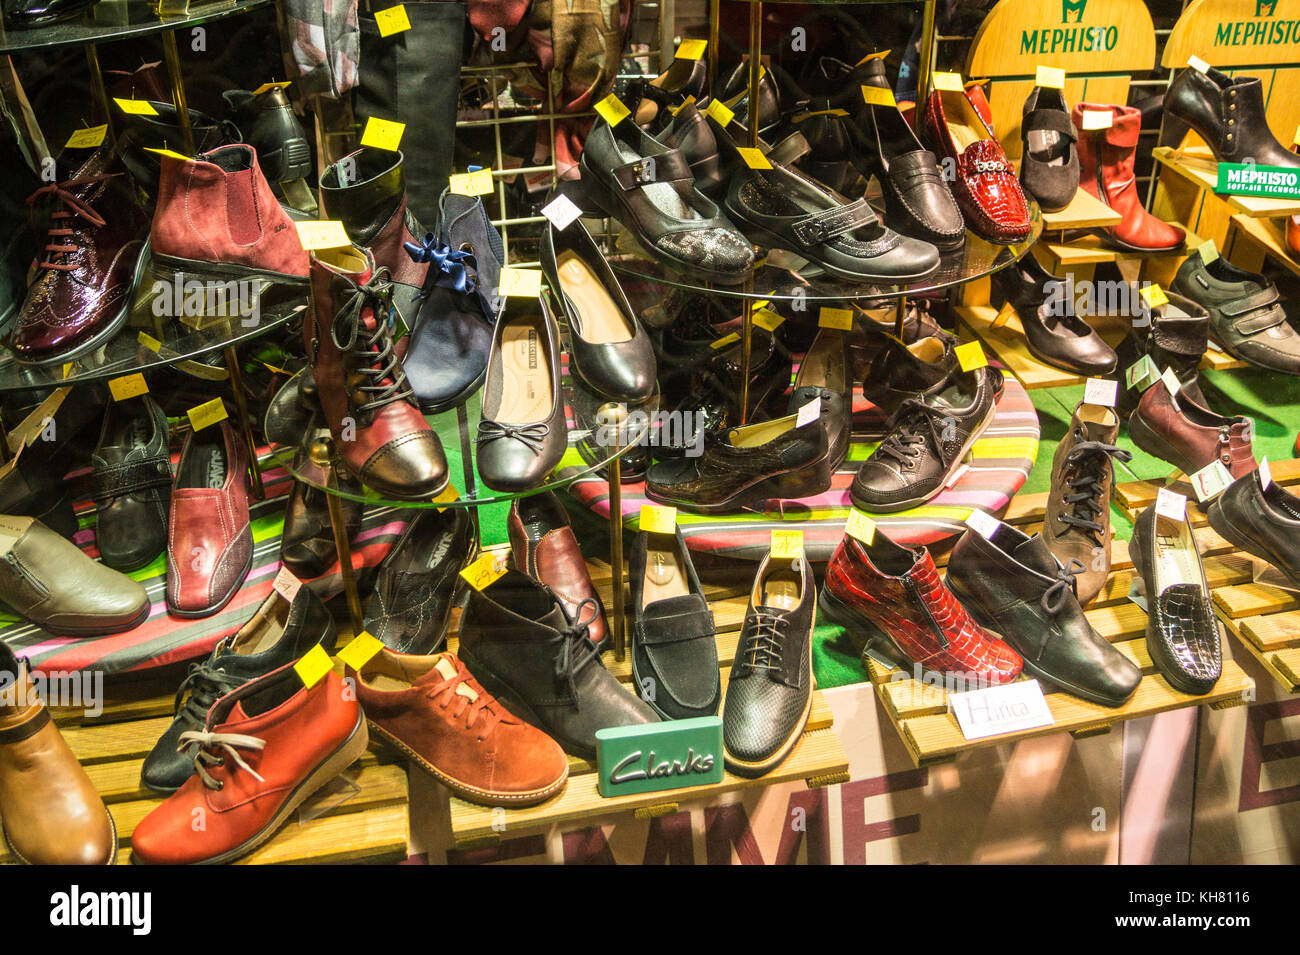 display-of-clarks-and-mephisto-brand-shoes-in-a-shop-window-toulouse-KH8116.jpg